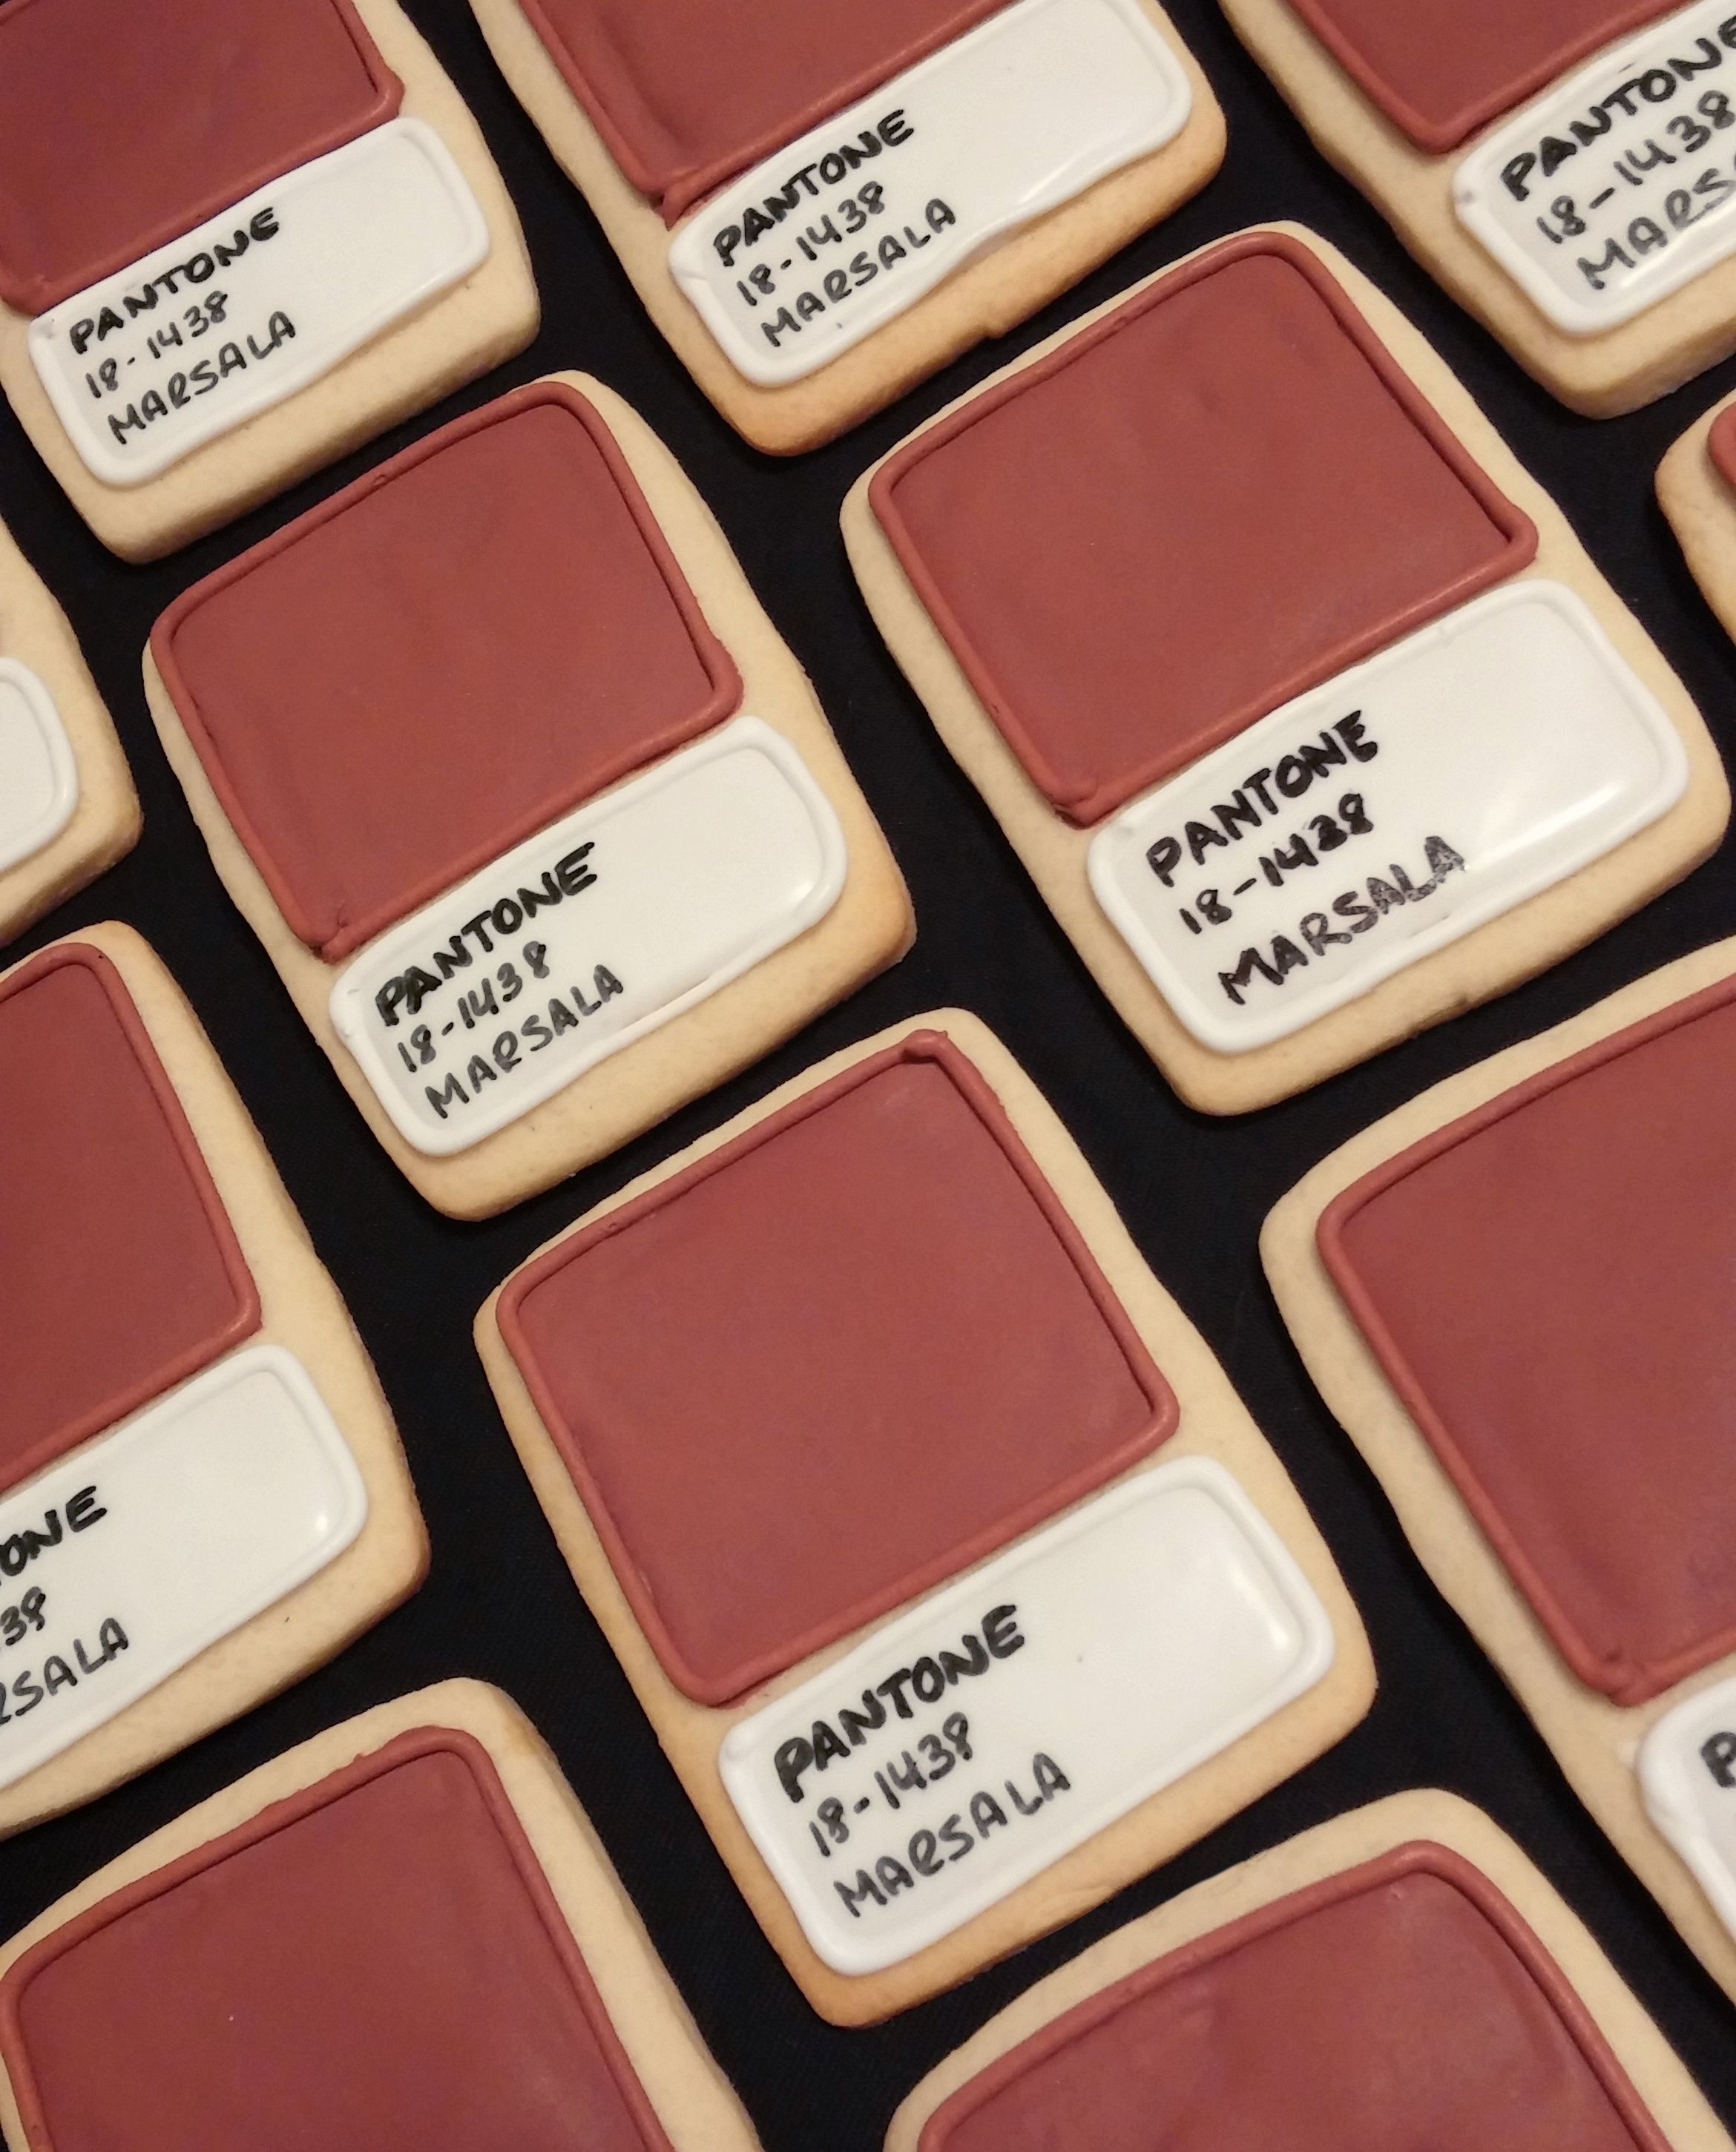 PANTONE\u0027s Color of the Year Marsala is so rich we want to eat it ...